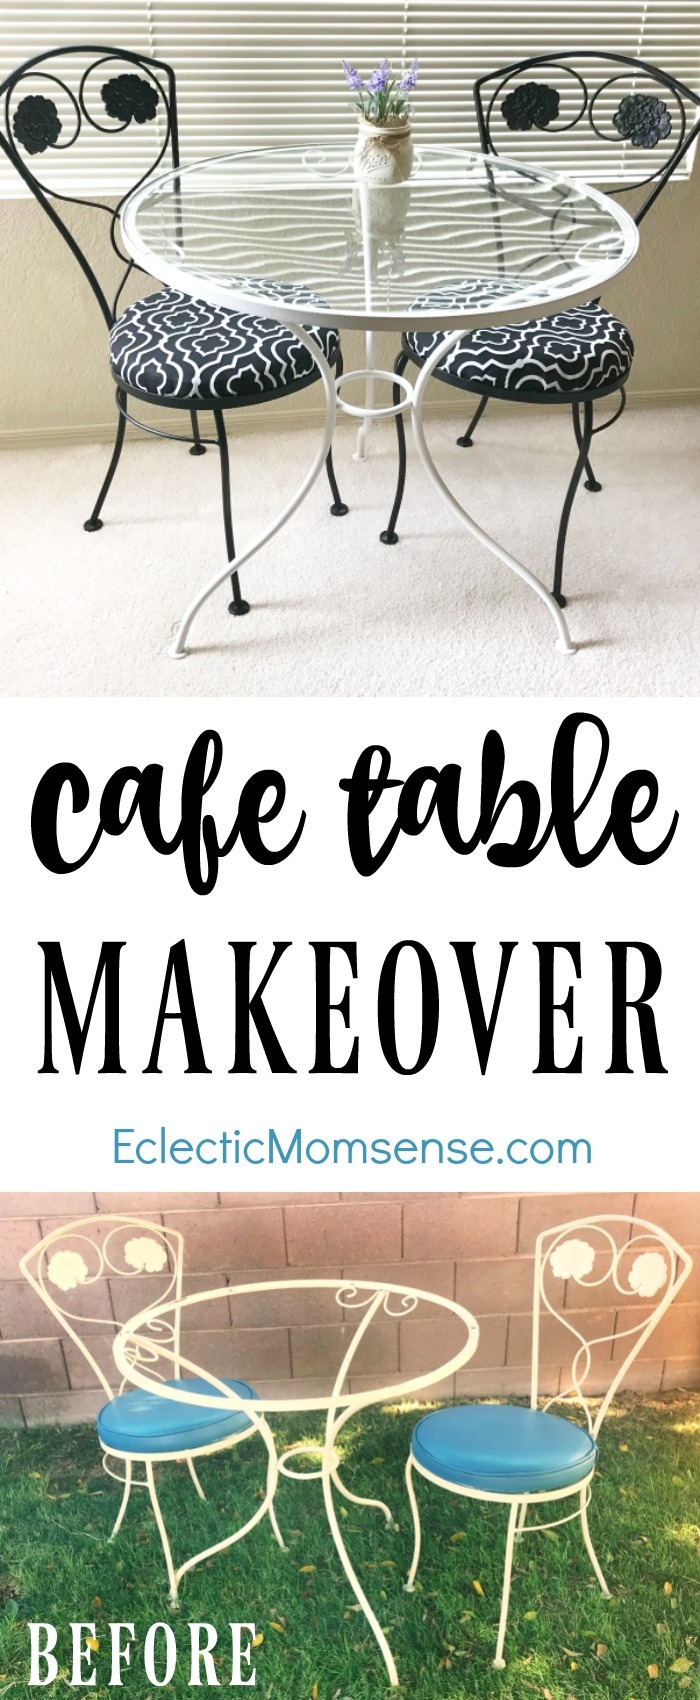 Cafe Table Makeover- From old chipped paint to bright and stylish cafe table set in less than a day. Come checkout the tips for conquering your furniture makeover with ease. #ad @HomeRightTips